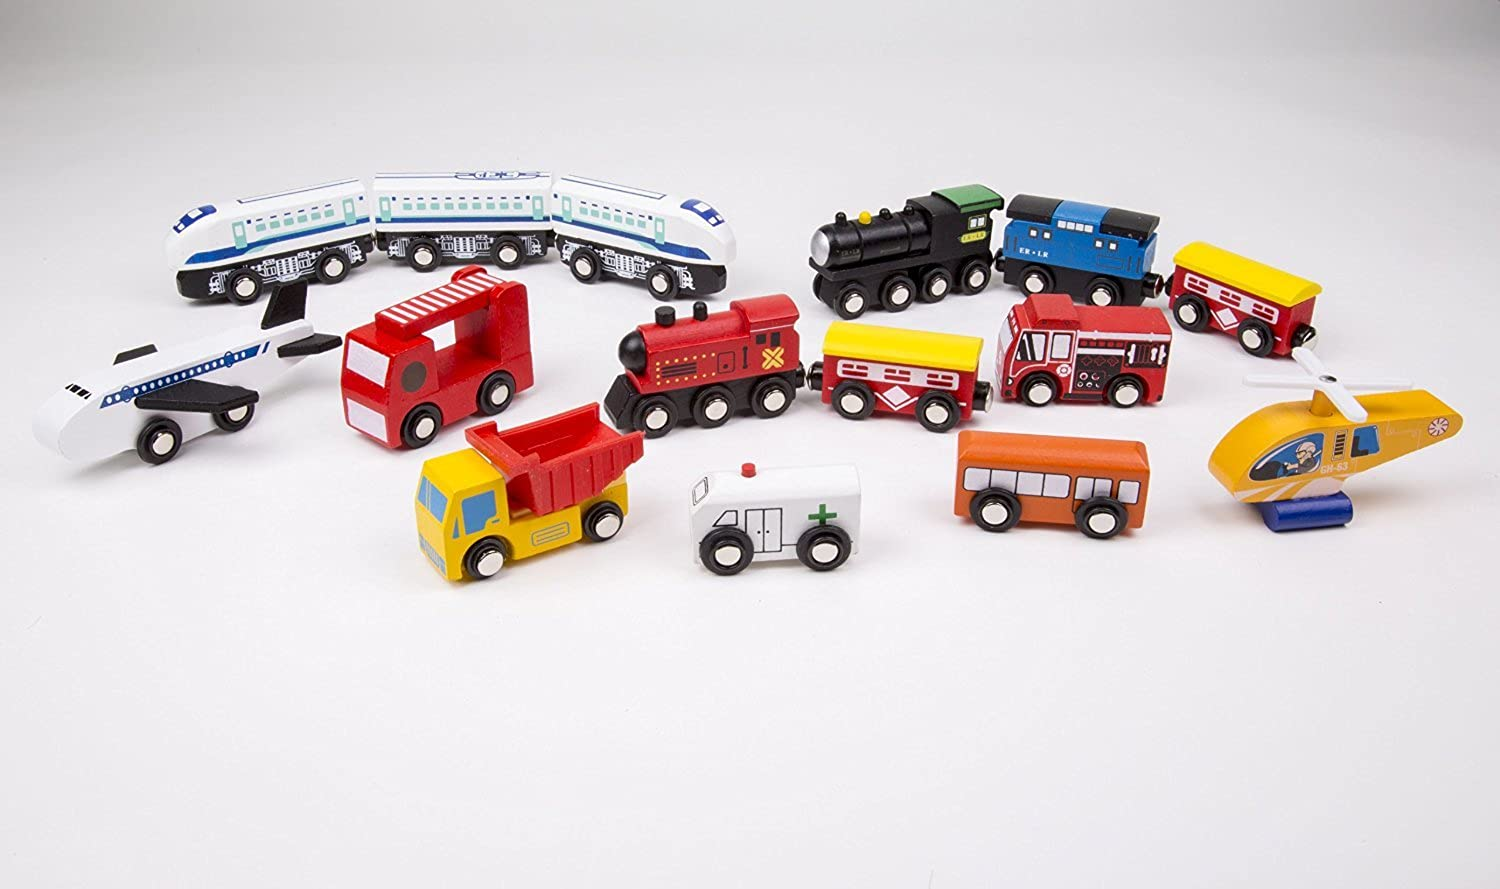 Wooden Train Car Set  15 Unique Vehicles And Engines Add Variety To Your Set  Compatible With Thomas, Brio, All Major Brands